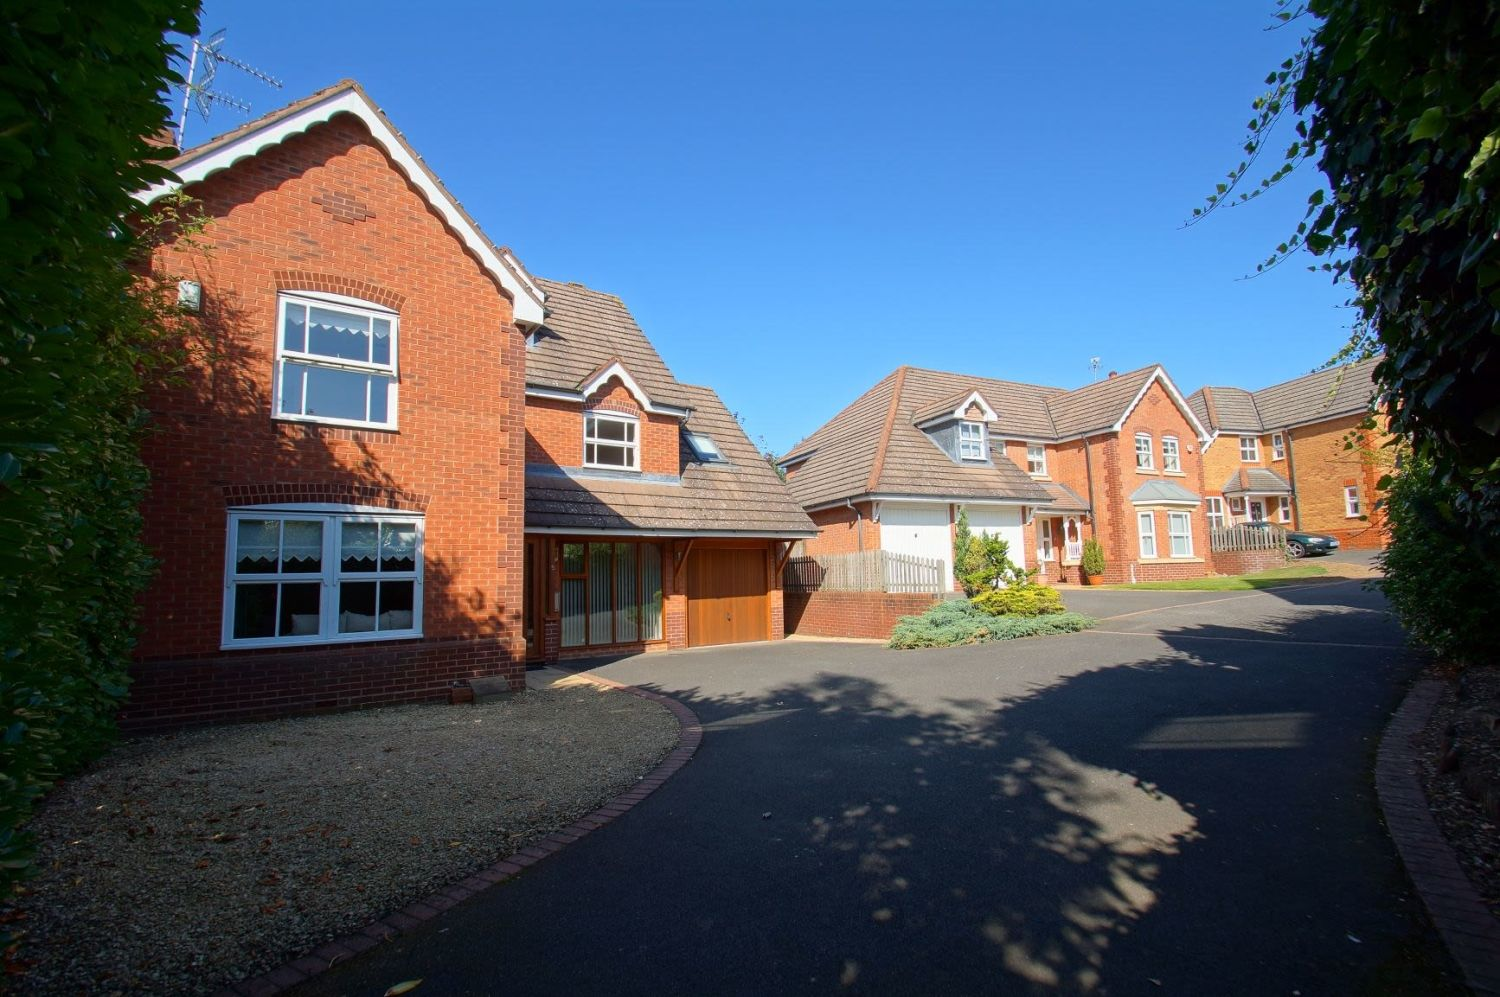 4 bed detached for sale in Acre Lane, Webheath  - Property Image 2